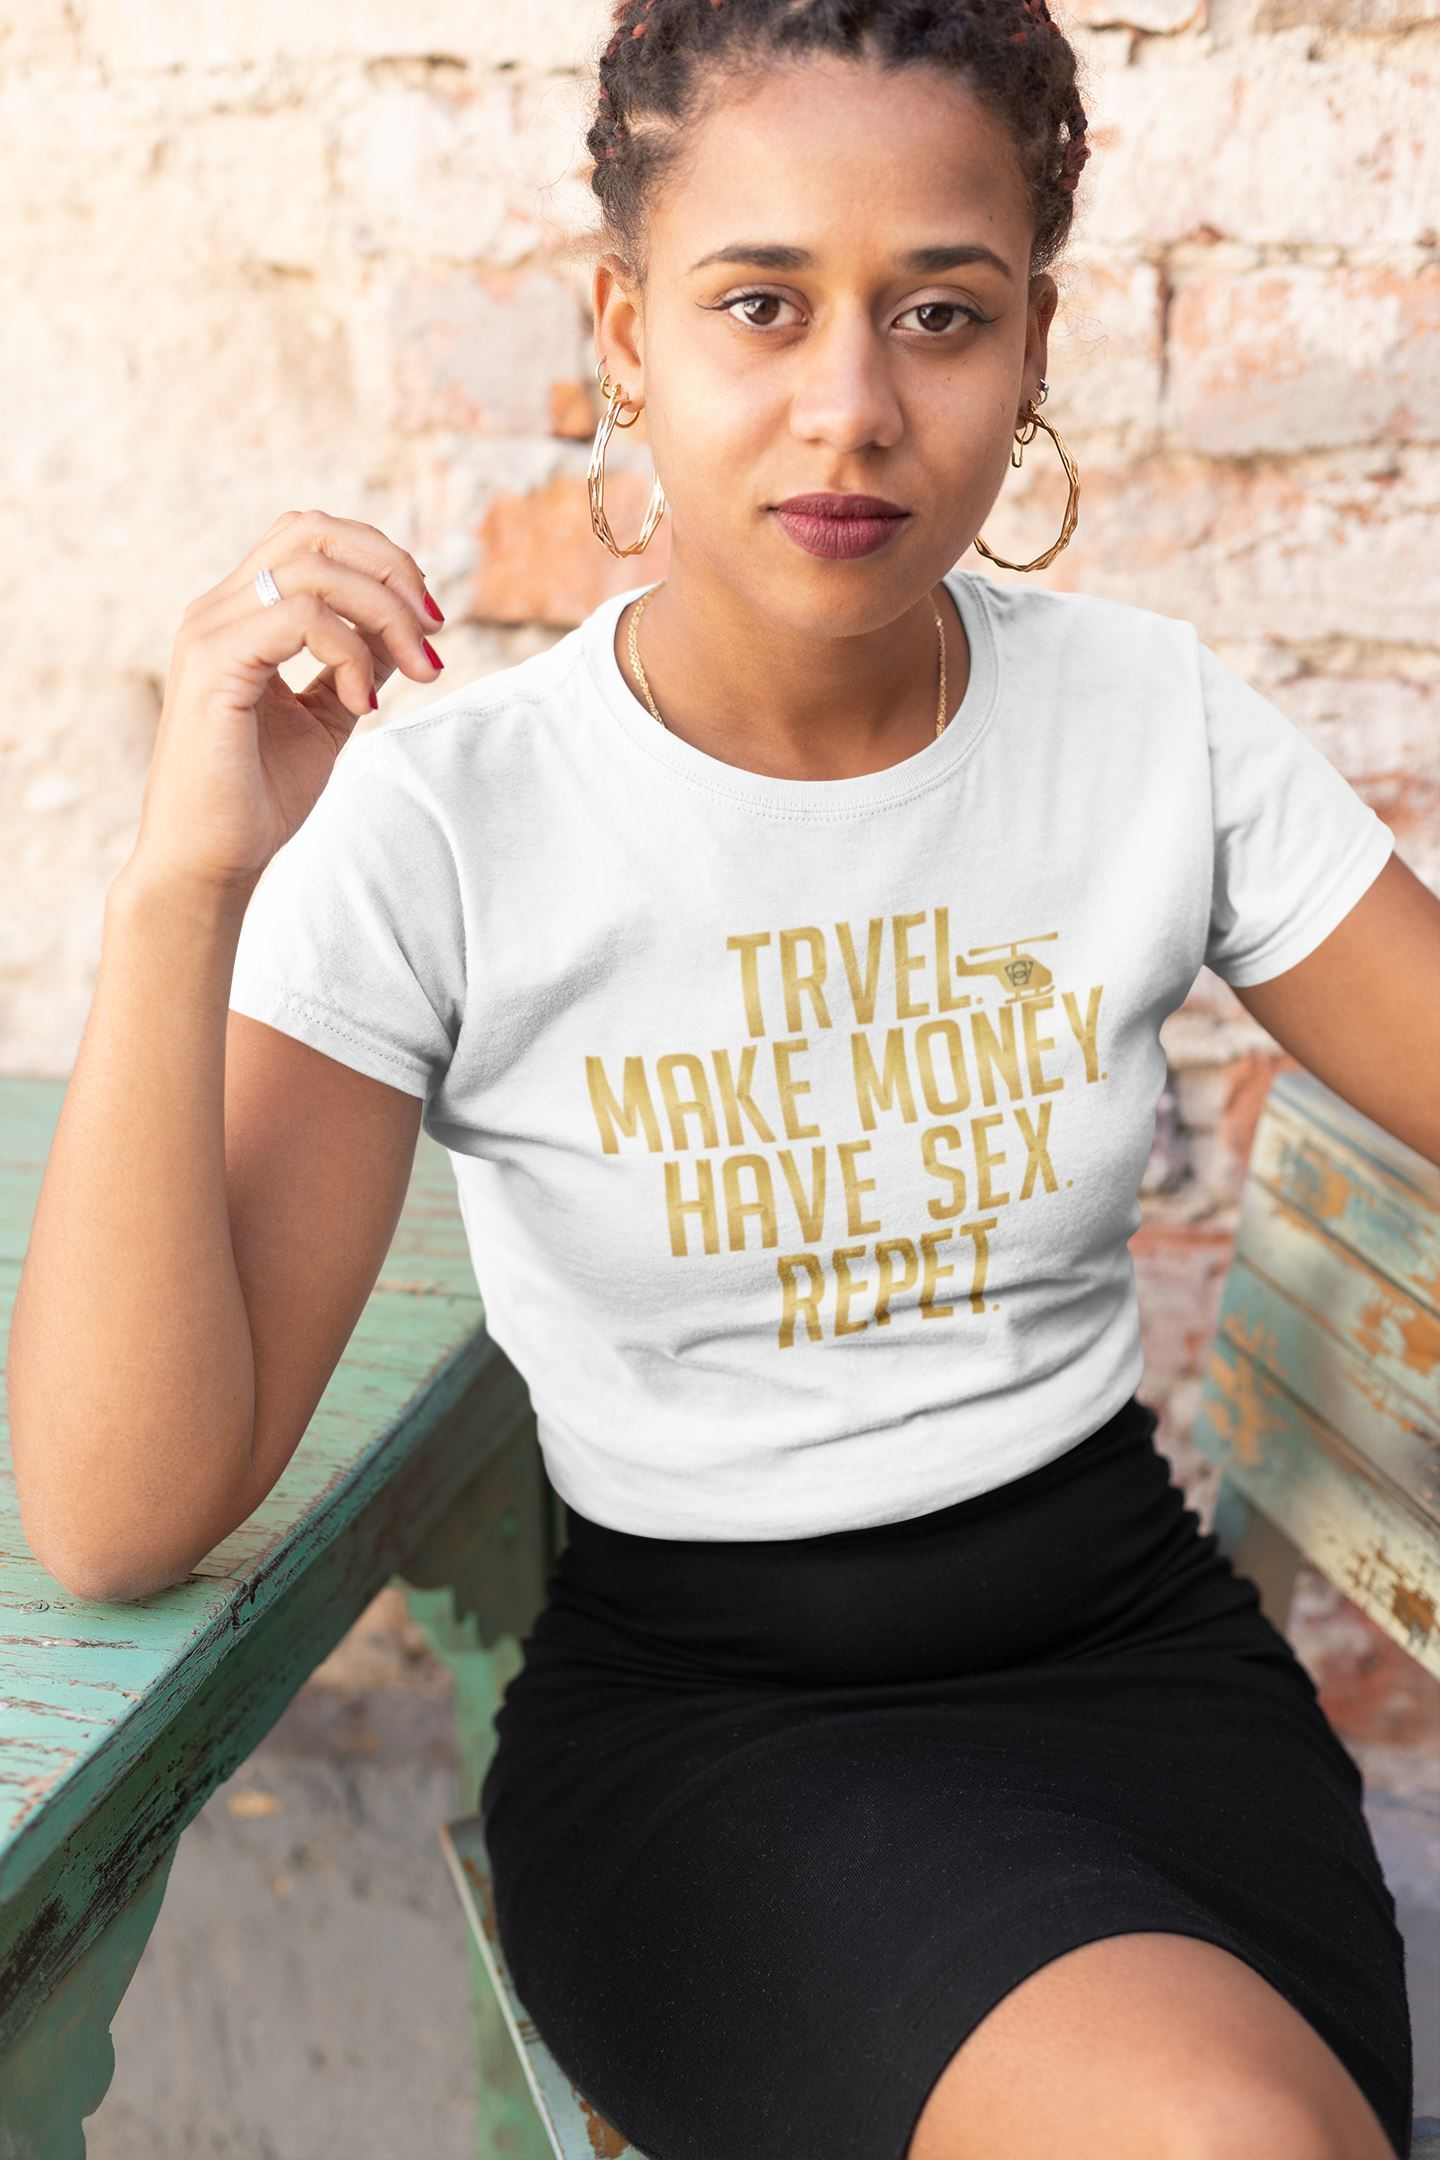 Travel - Make Money - Have Sex - Repeat Tee Women T-shirt EntrepreneurKing.co White S